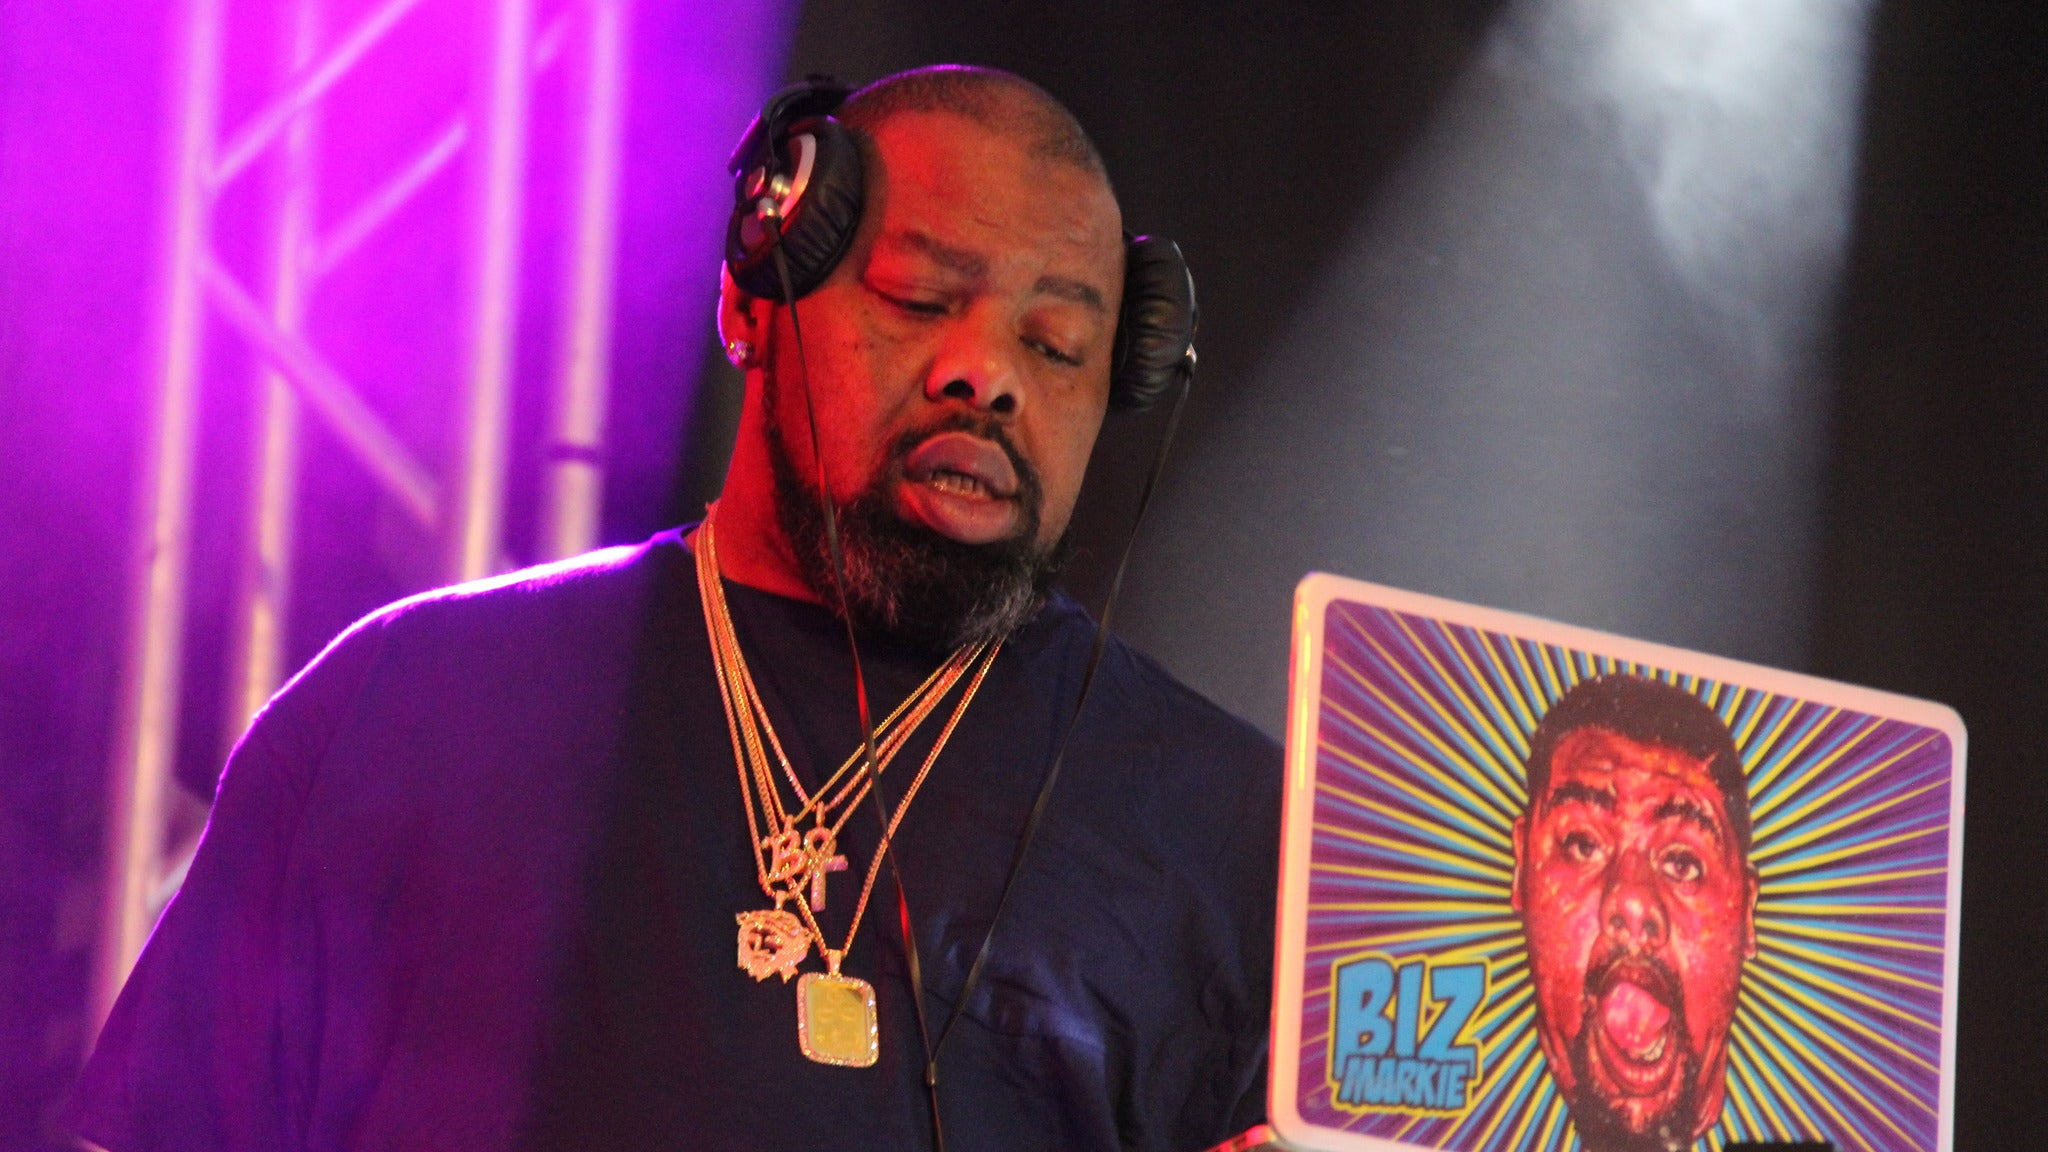 Biz Markie - Decades Collide at Ace of Spades